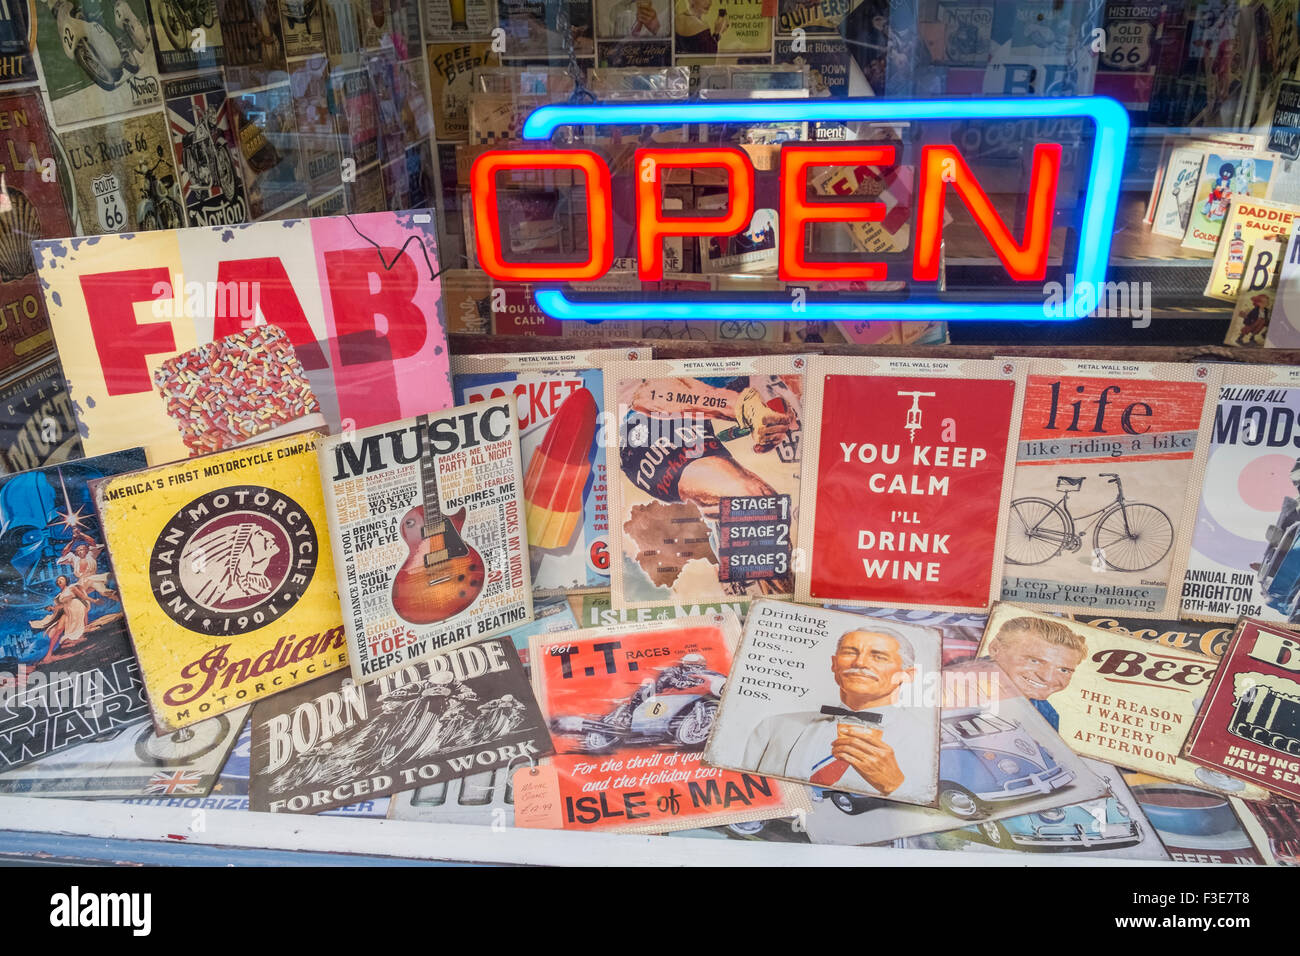 Shop window display of nostalgic posters, with neon 'Open' sign. - Stock Image